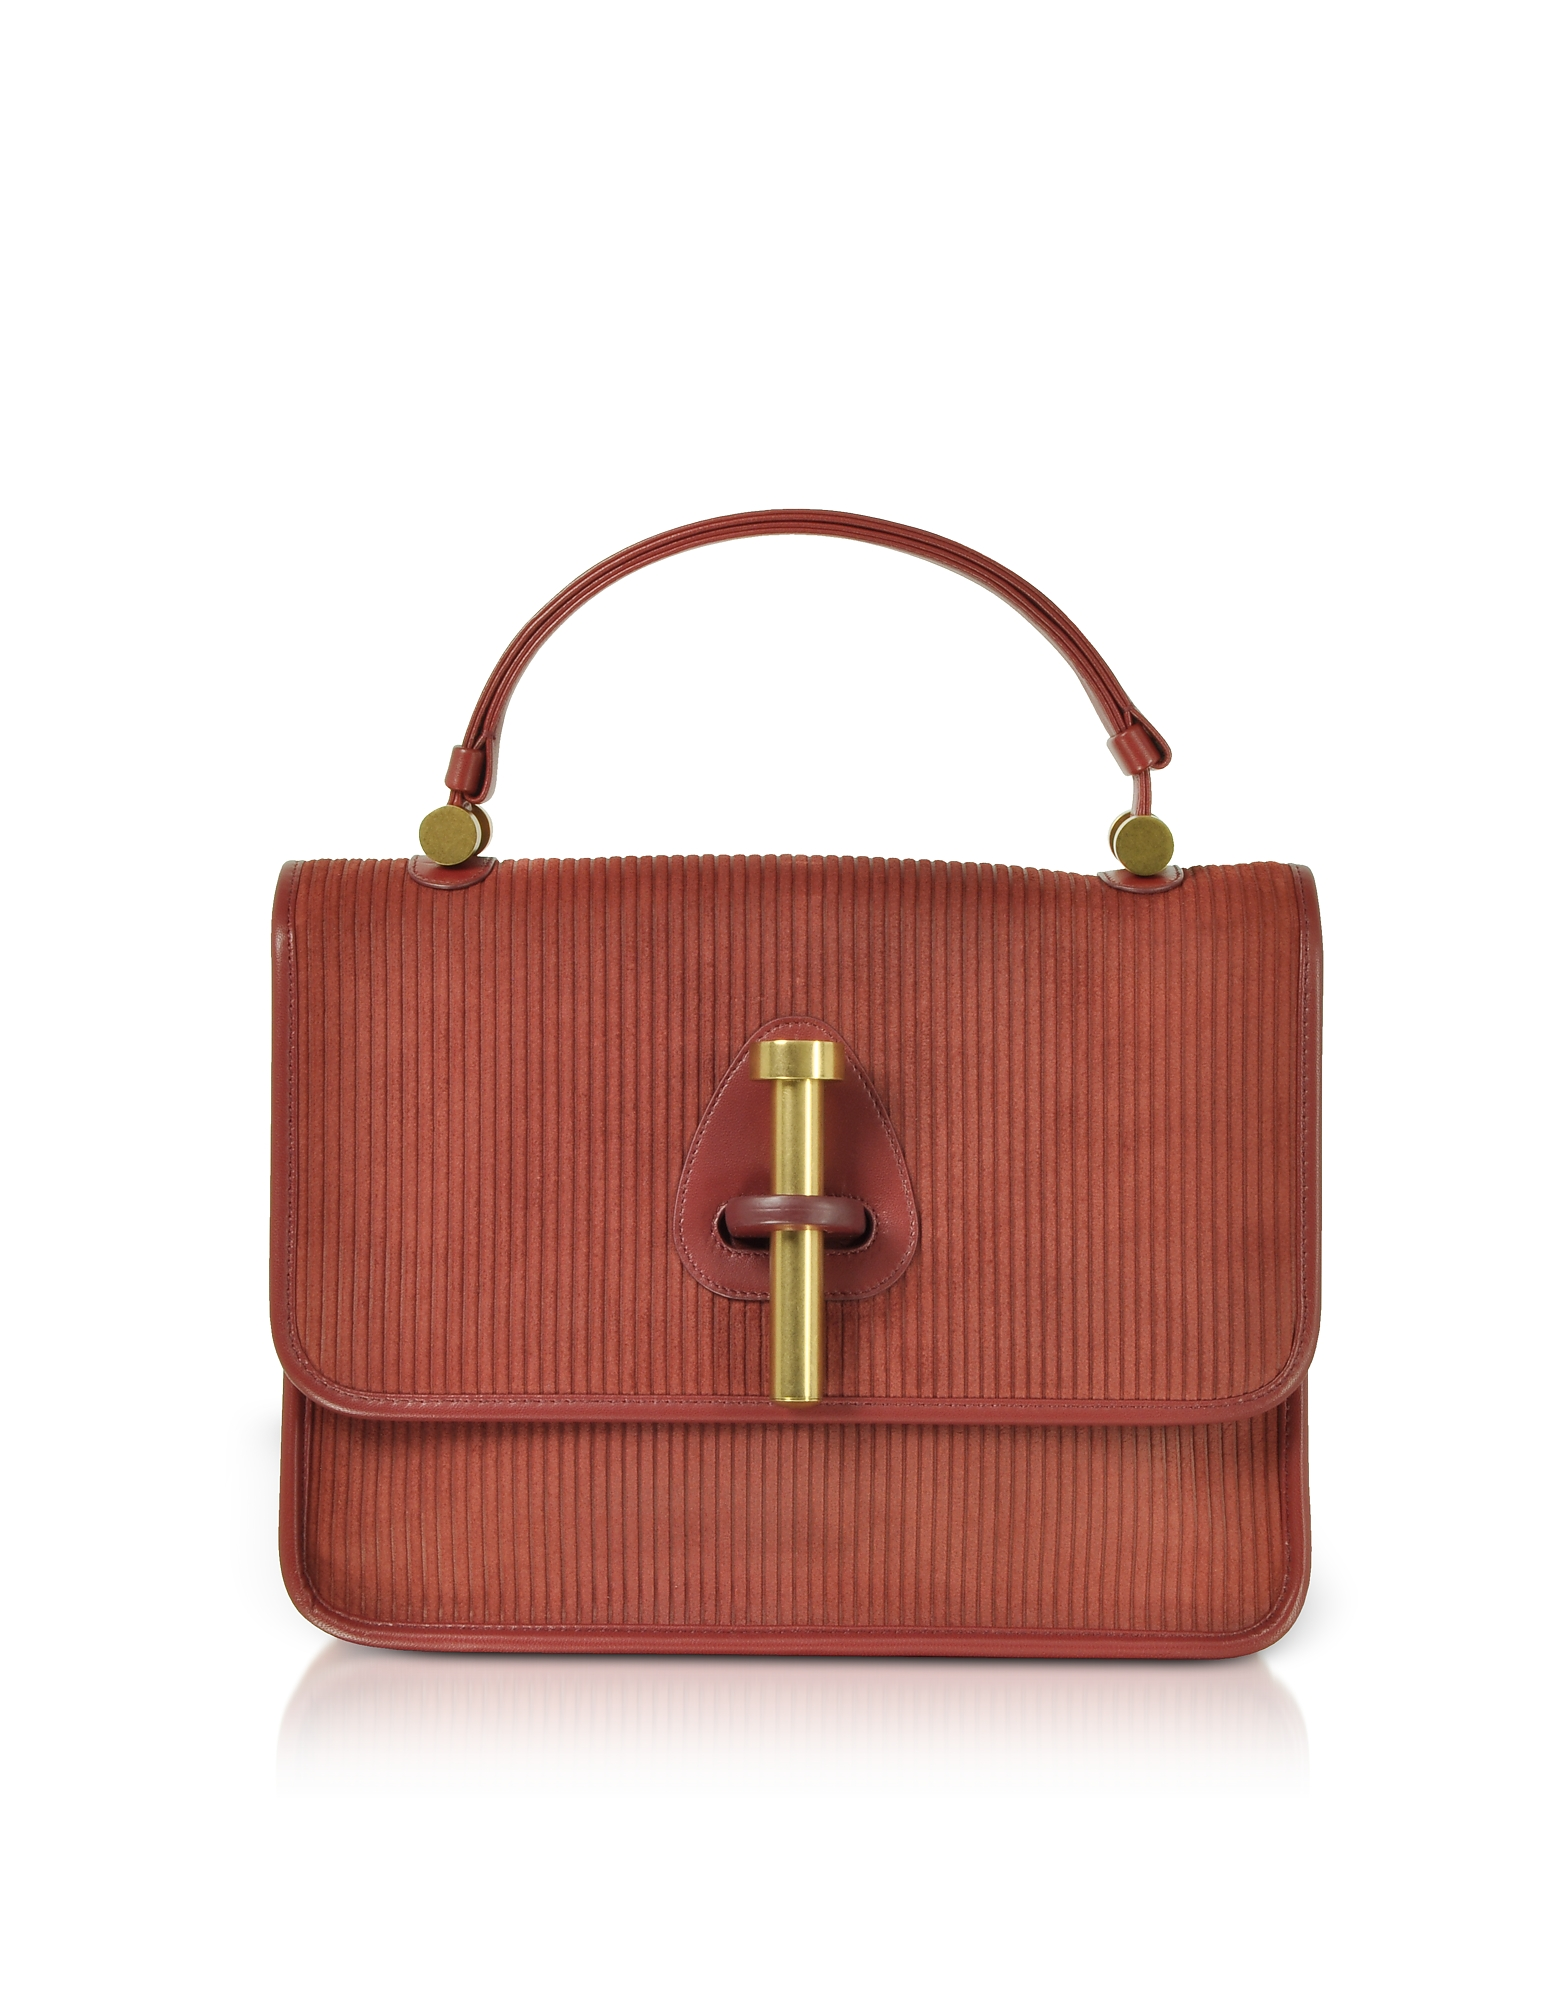 Rodo Handbags, Striped Suede and Leather Satchel Bag